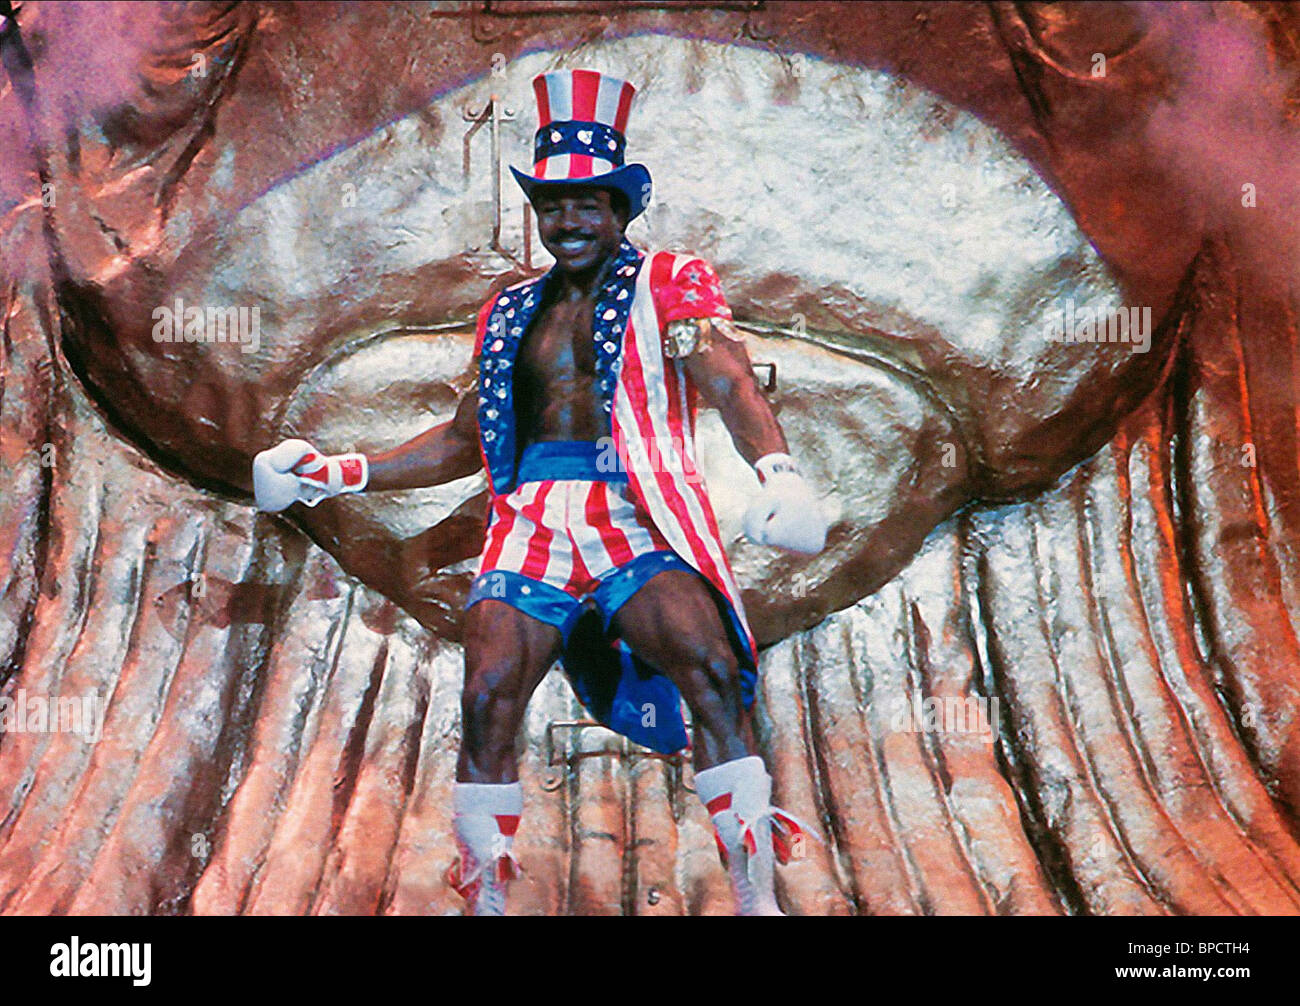 CARL WEATHERS ROCKY IV (1985) - Stock Image